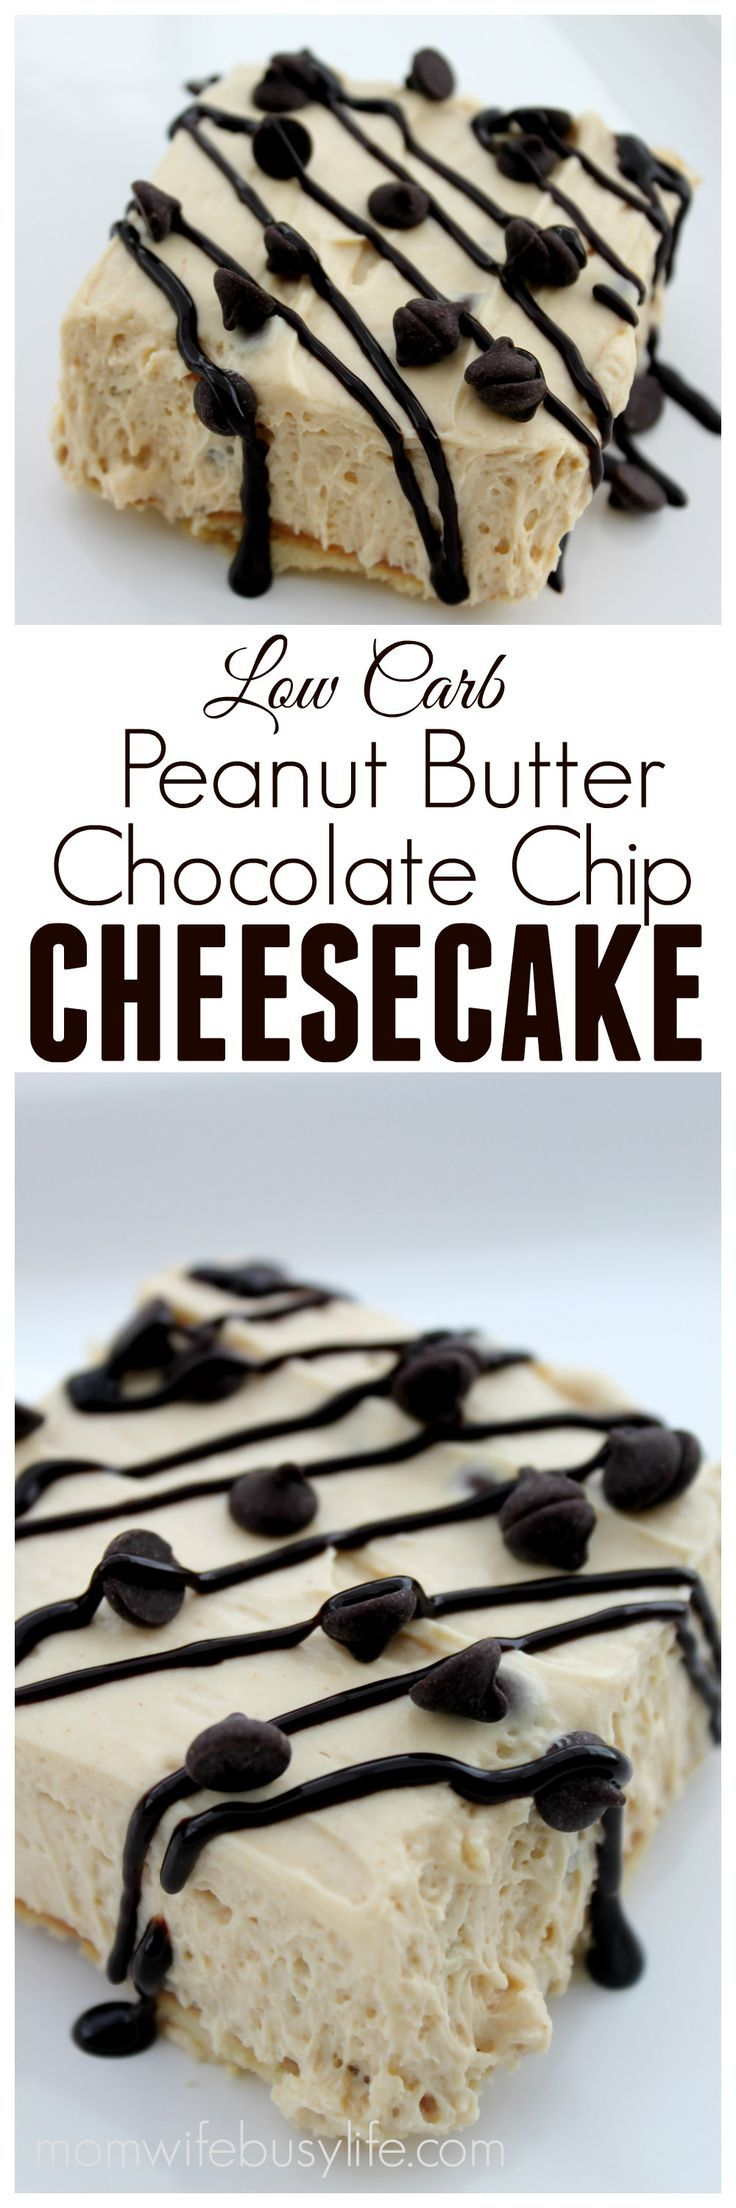 Low Carb Peanut Butter Chocolate Chip Cheesecake Recipe